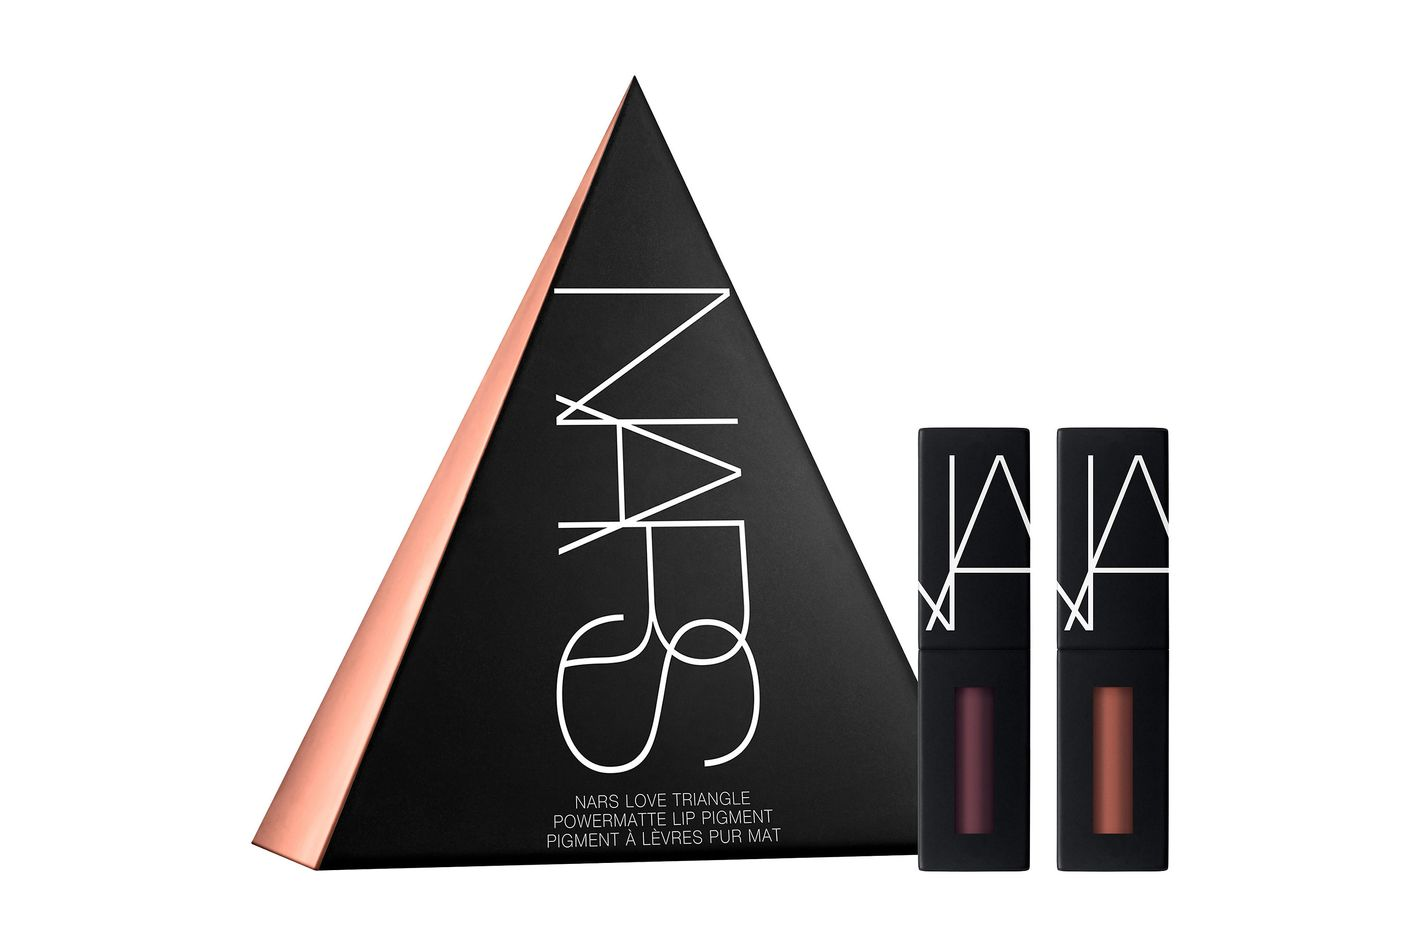 NARS PowerMatte Lip Pigment Duo Love Triangle